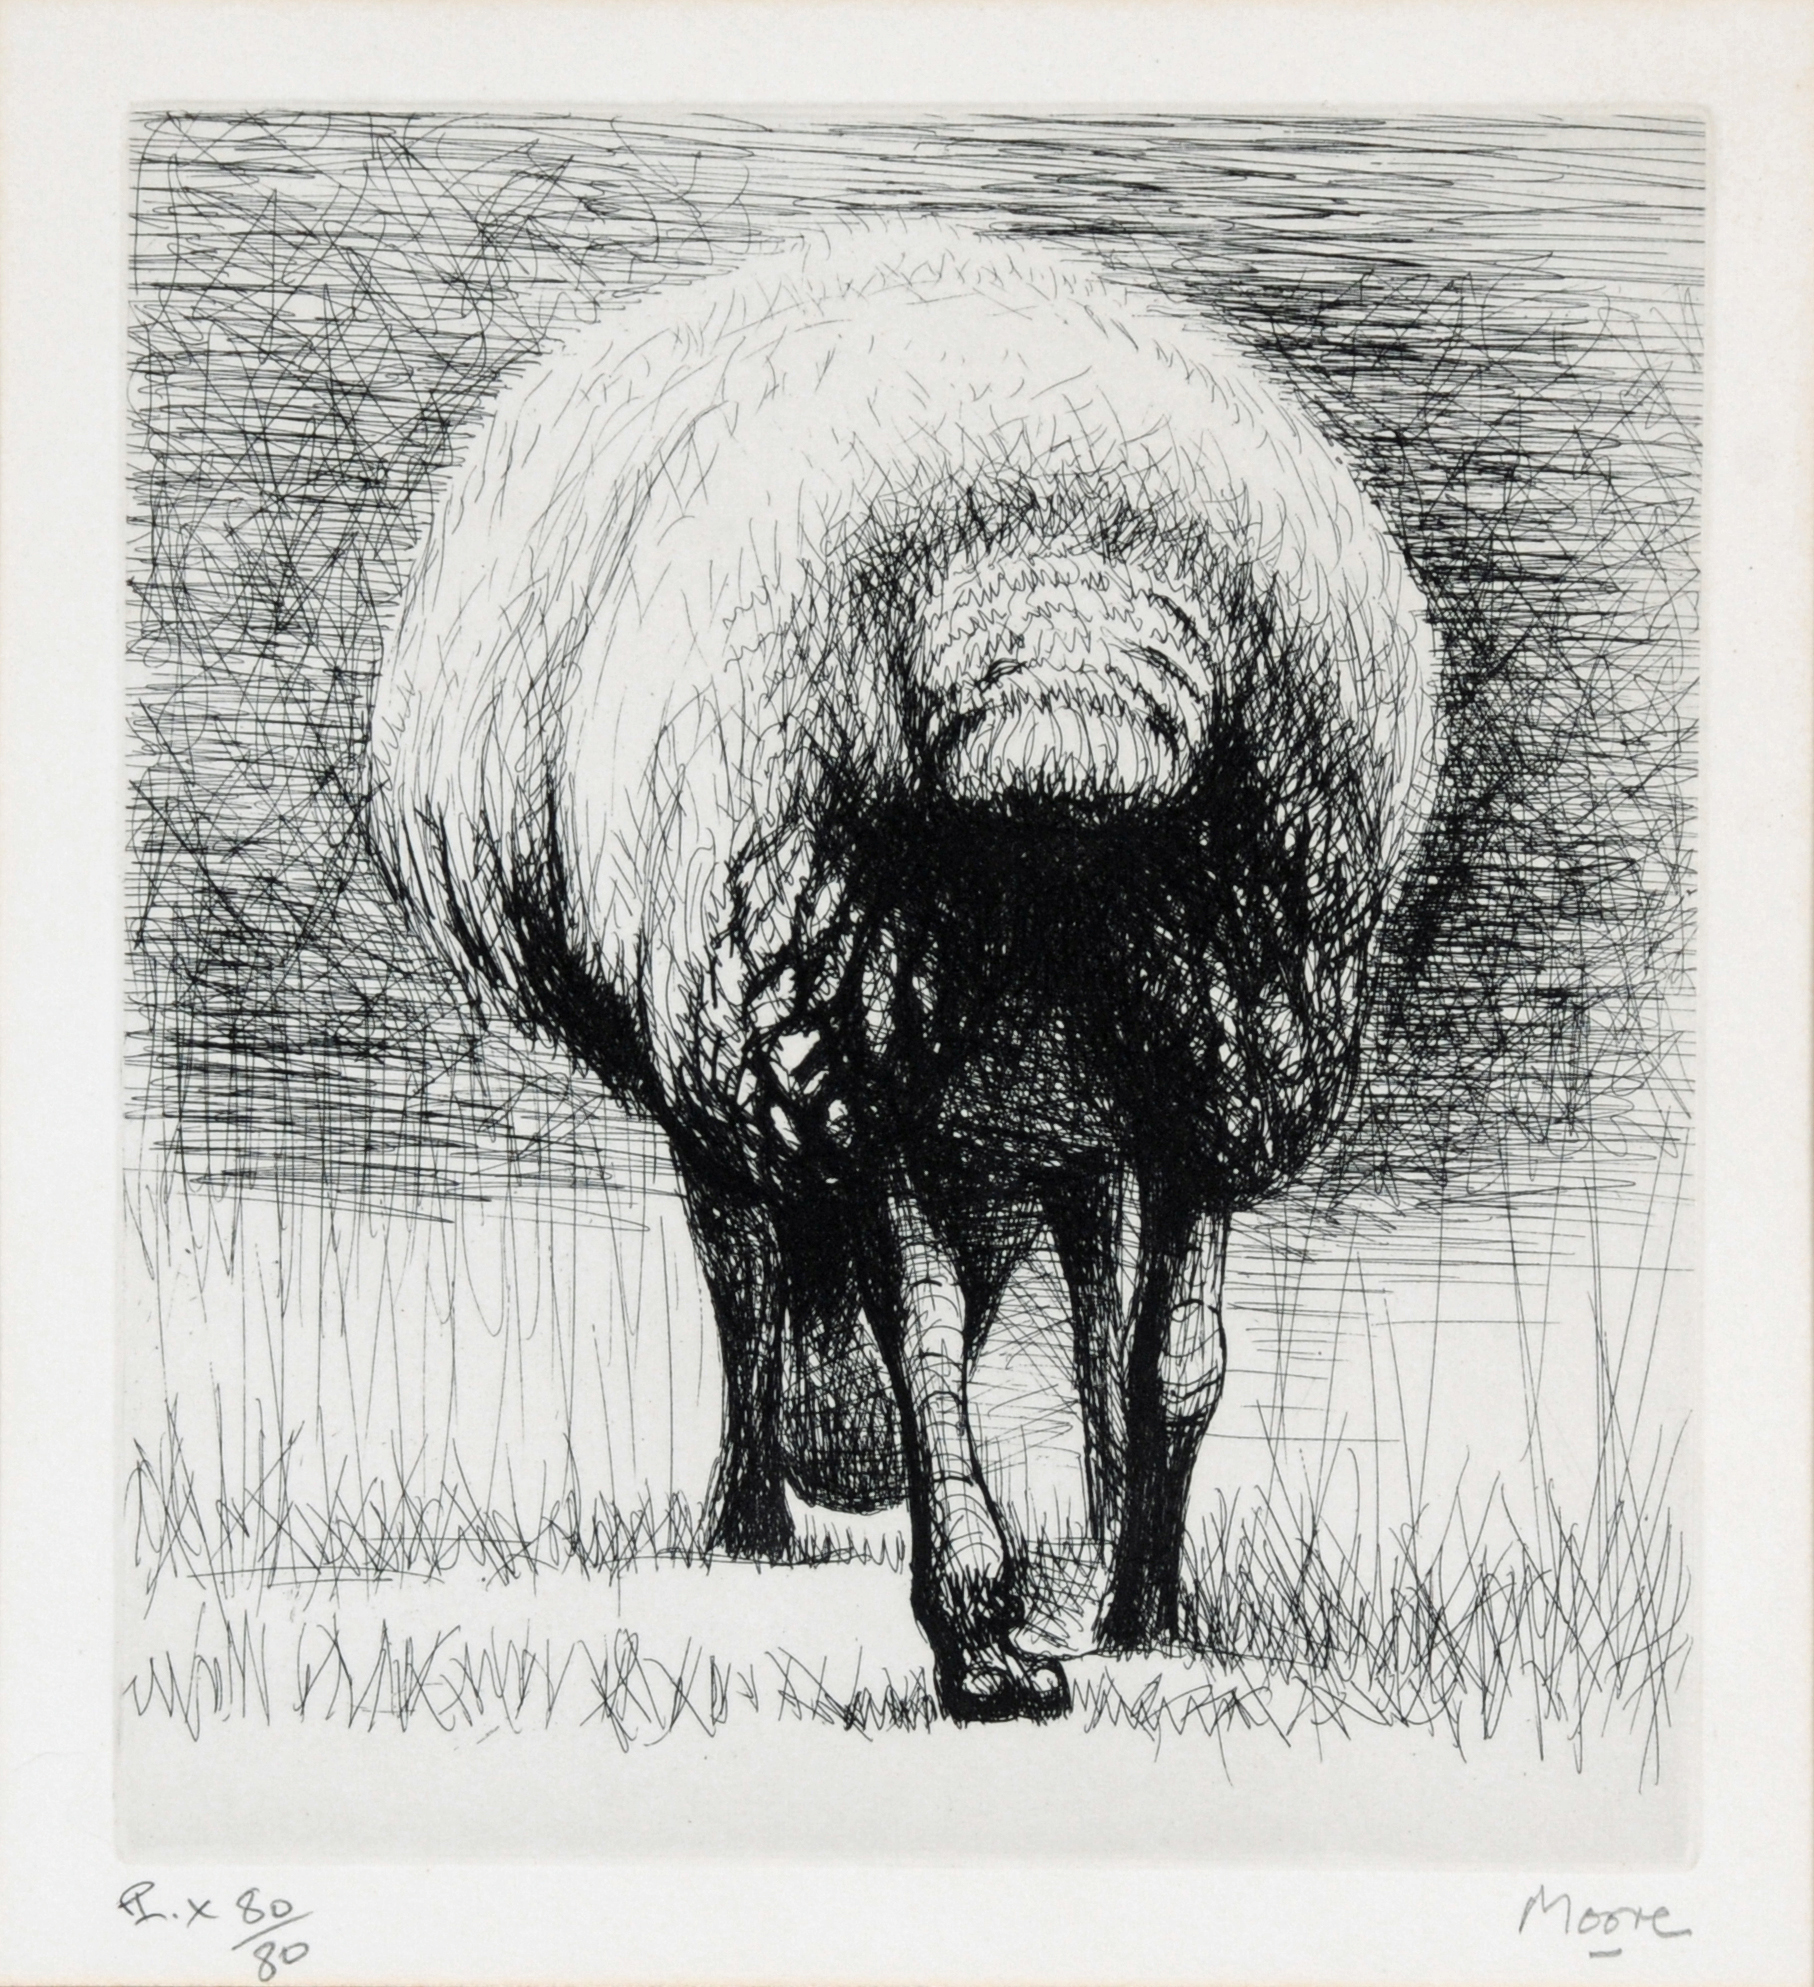 """Moore Henry, 2 sheets: Sheep Back View; Sheep With Lamb, from """"Sheep Album"""""""